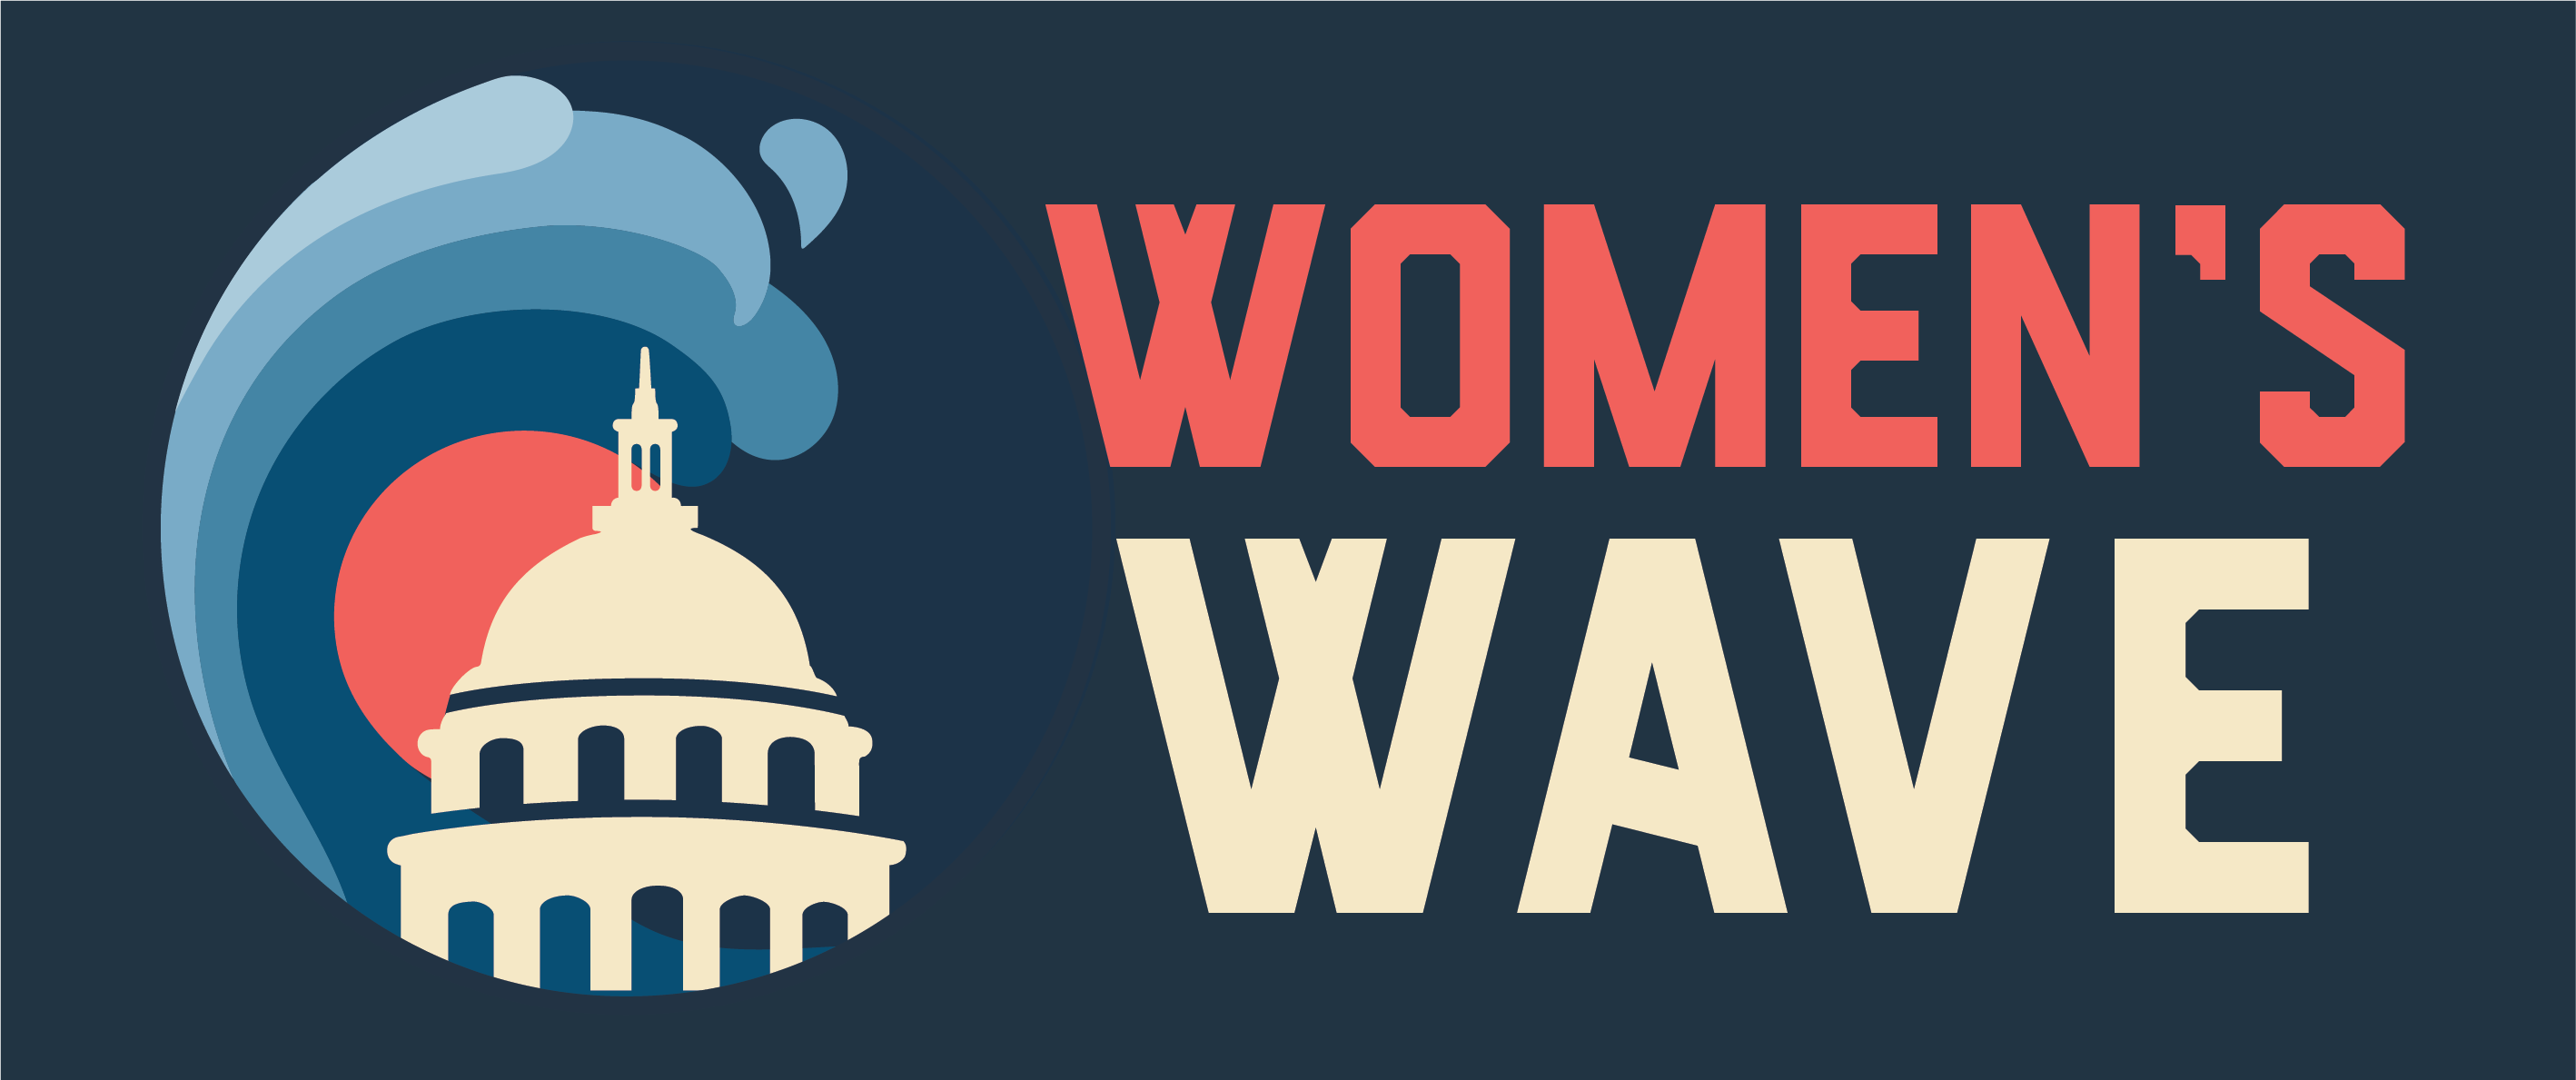 Women's March, Women's Wave Banner design